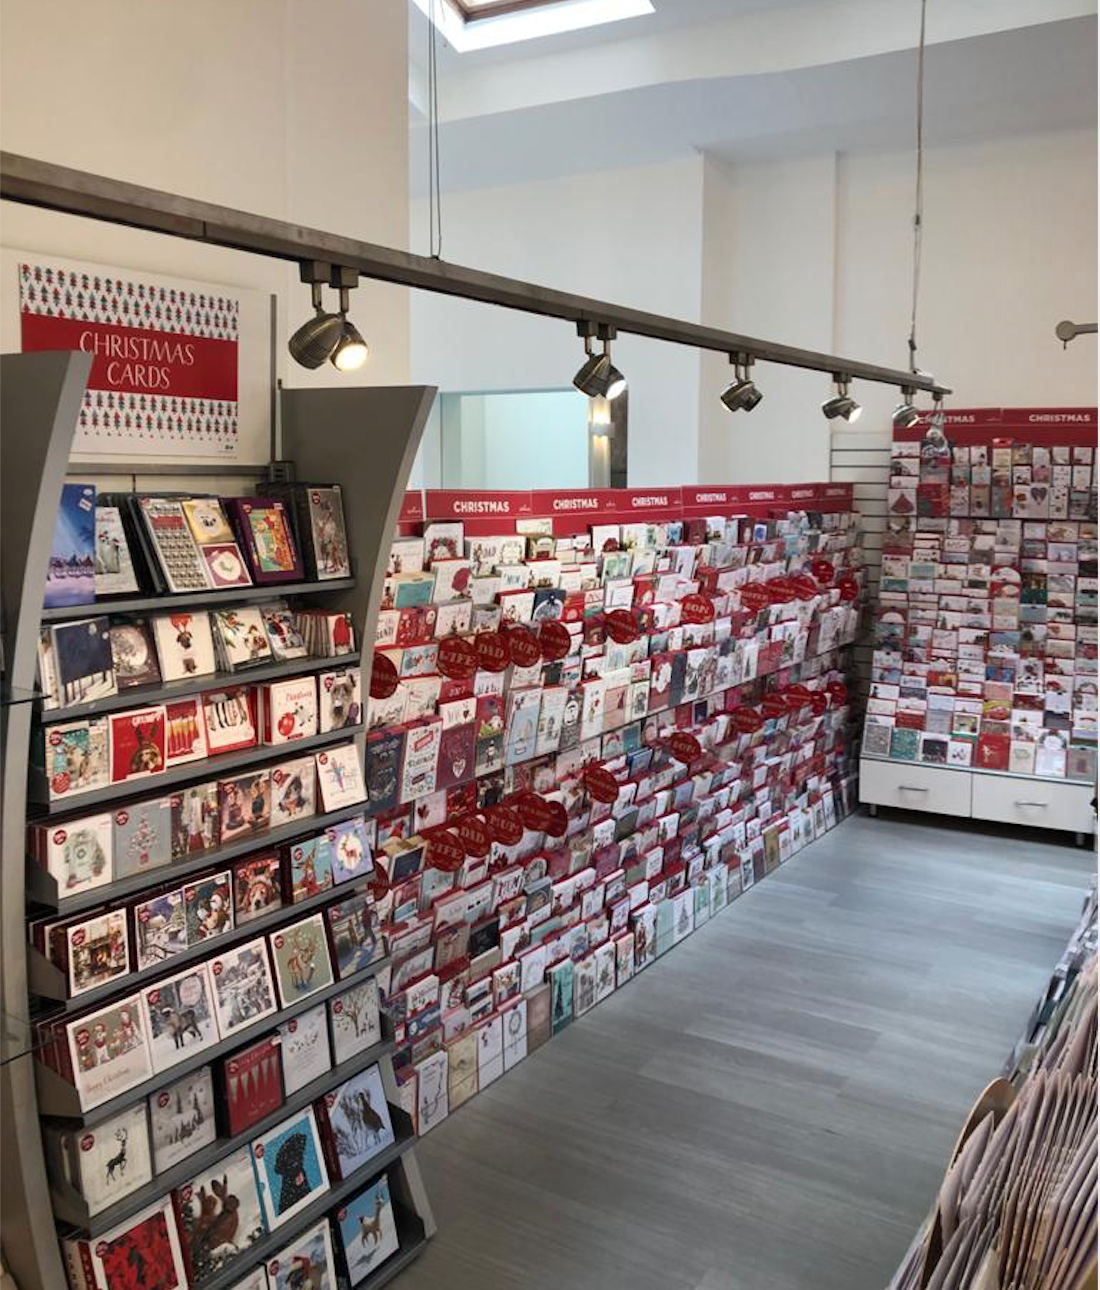 Above: The current Celebrations counter card display includes designs from IC&G, Ling, Second Nature, Jonny Javelin, Wendy Jones-Blackett, Belly Button and Tracey Russell, among others.